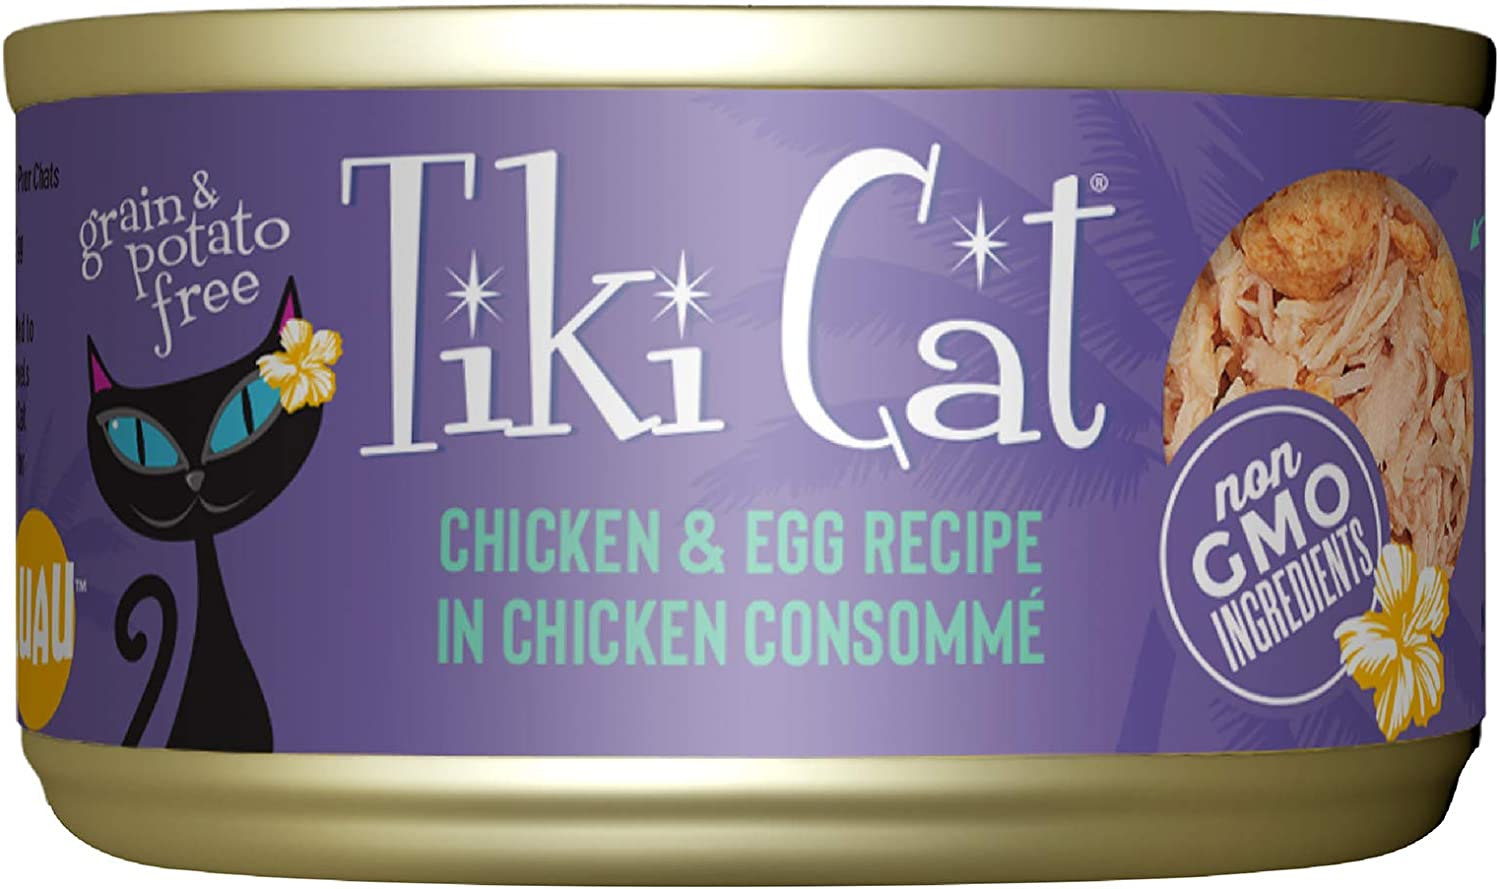 TIKI PETS Tiki Cat Luau Wet Food with Poultry or Fish in Consomme for Adult Cats & Kittens, Grain and Potato Free